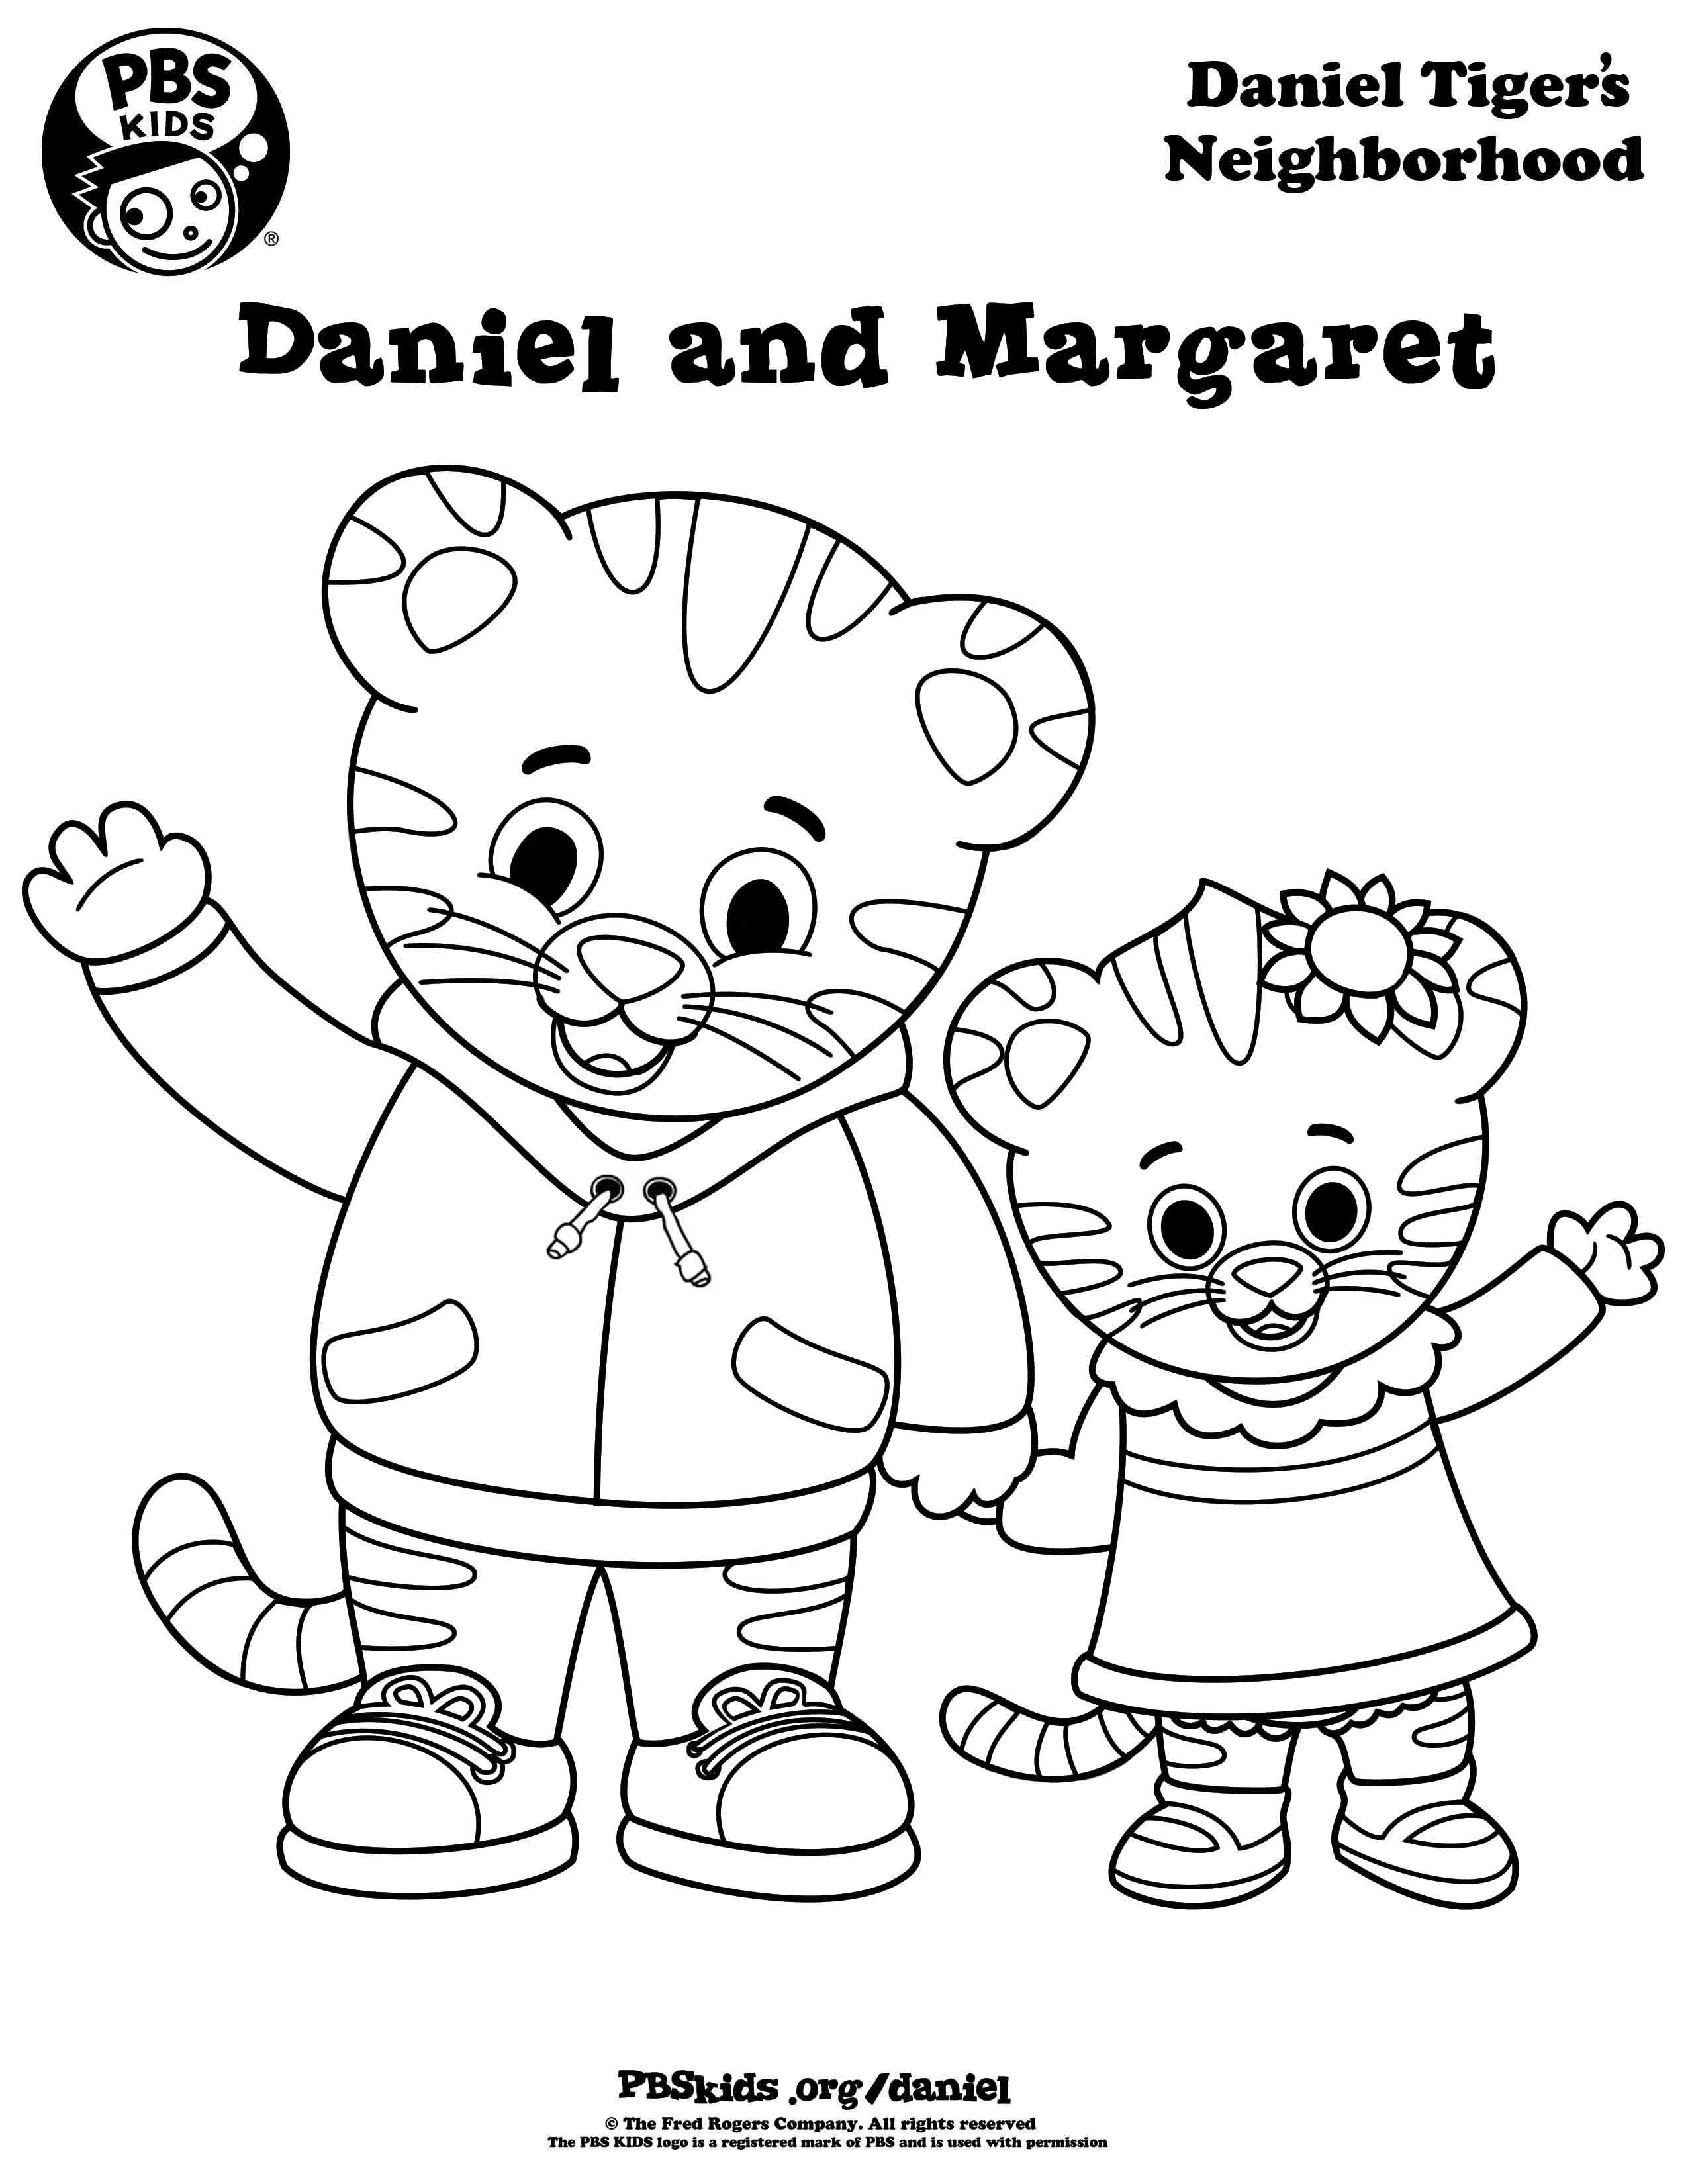 Coloring daniel tiger 39 s neighborhood pbs kids for Pbskids coloring pages